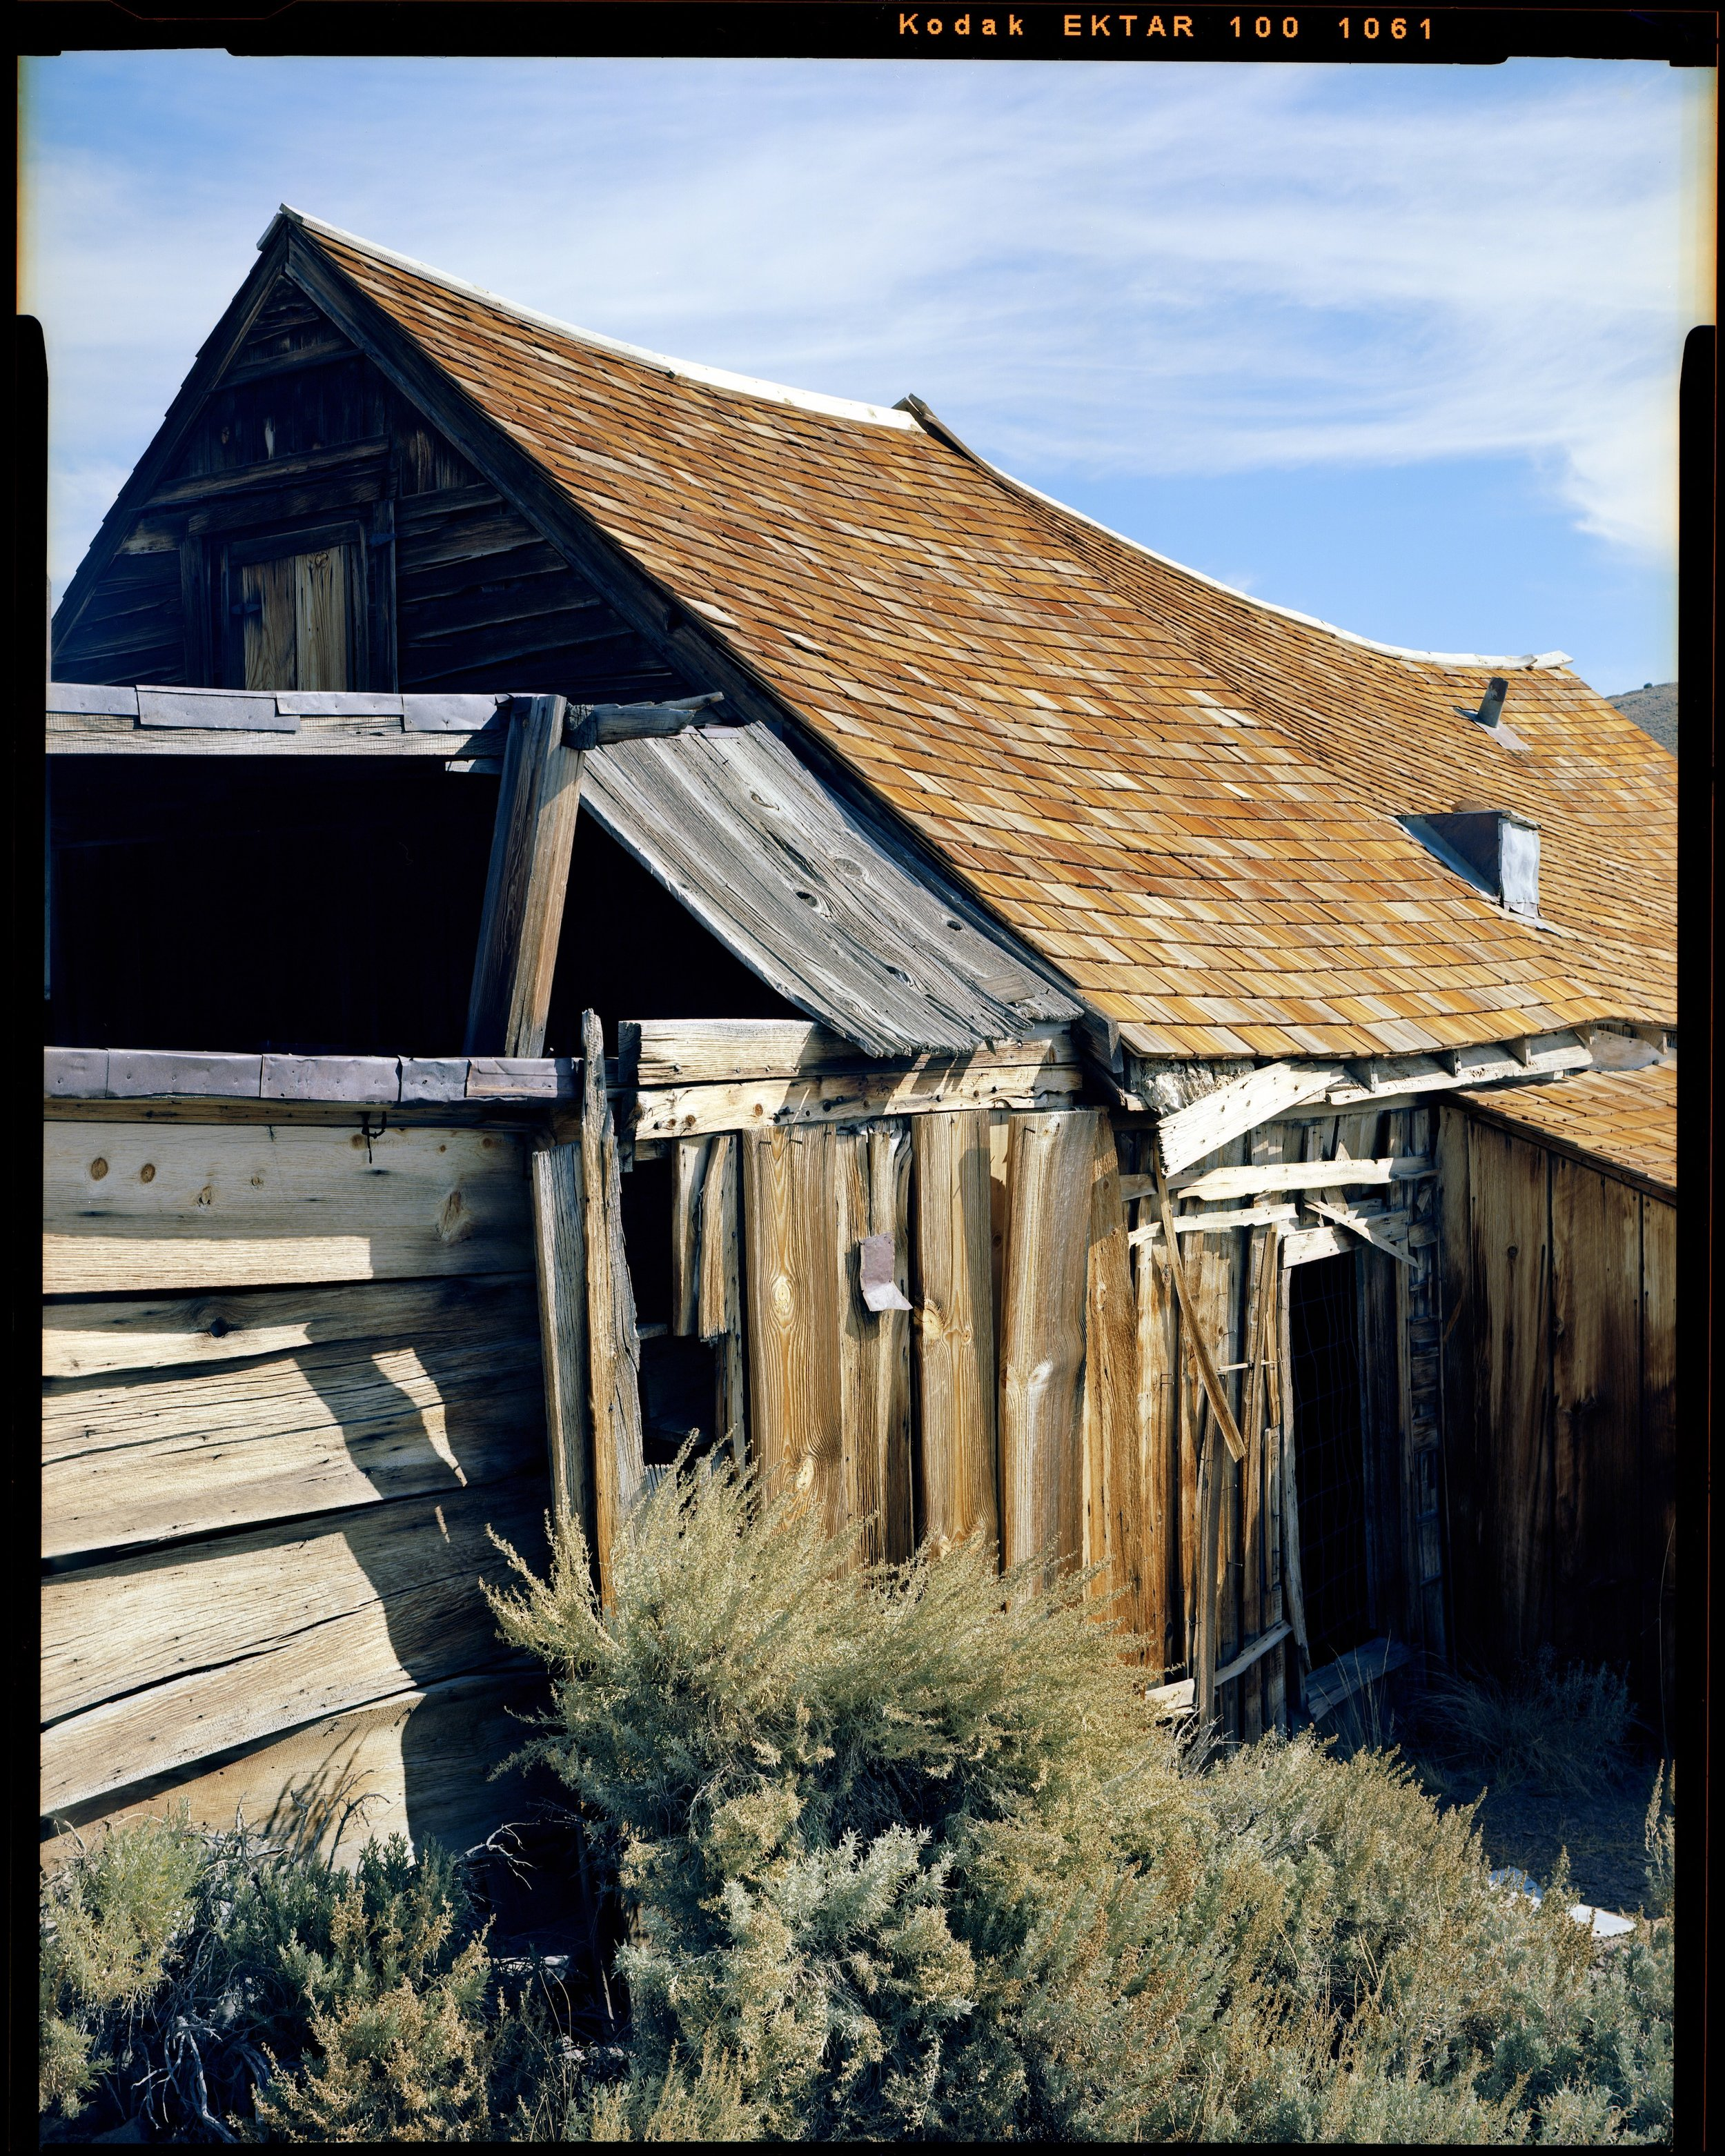 Golden Roof at Bodie, 2017. Nagaoka 4x5 + Fujinon 125mm f/5.6 W. Tack sharp image with near boundless resolution. This was a favorite shot from this trip to the Eastern Sierras and one of five sheets of Ektar 100 I exposed.